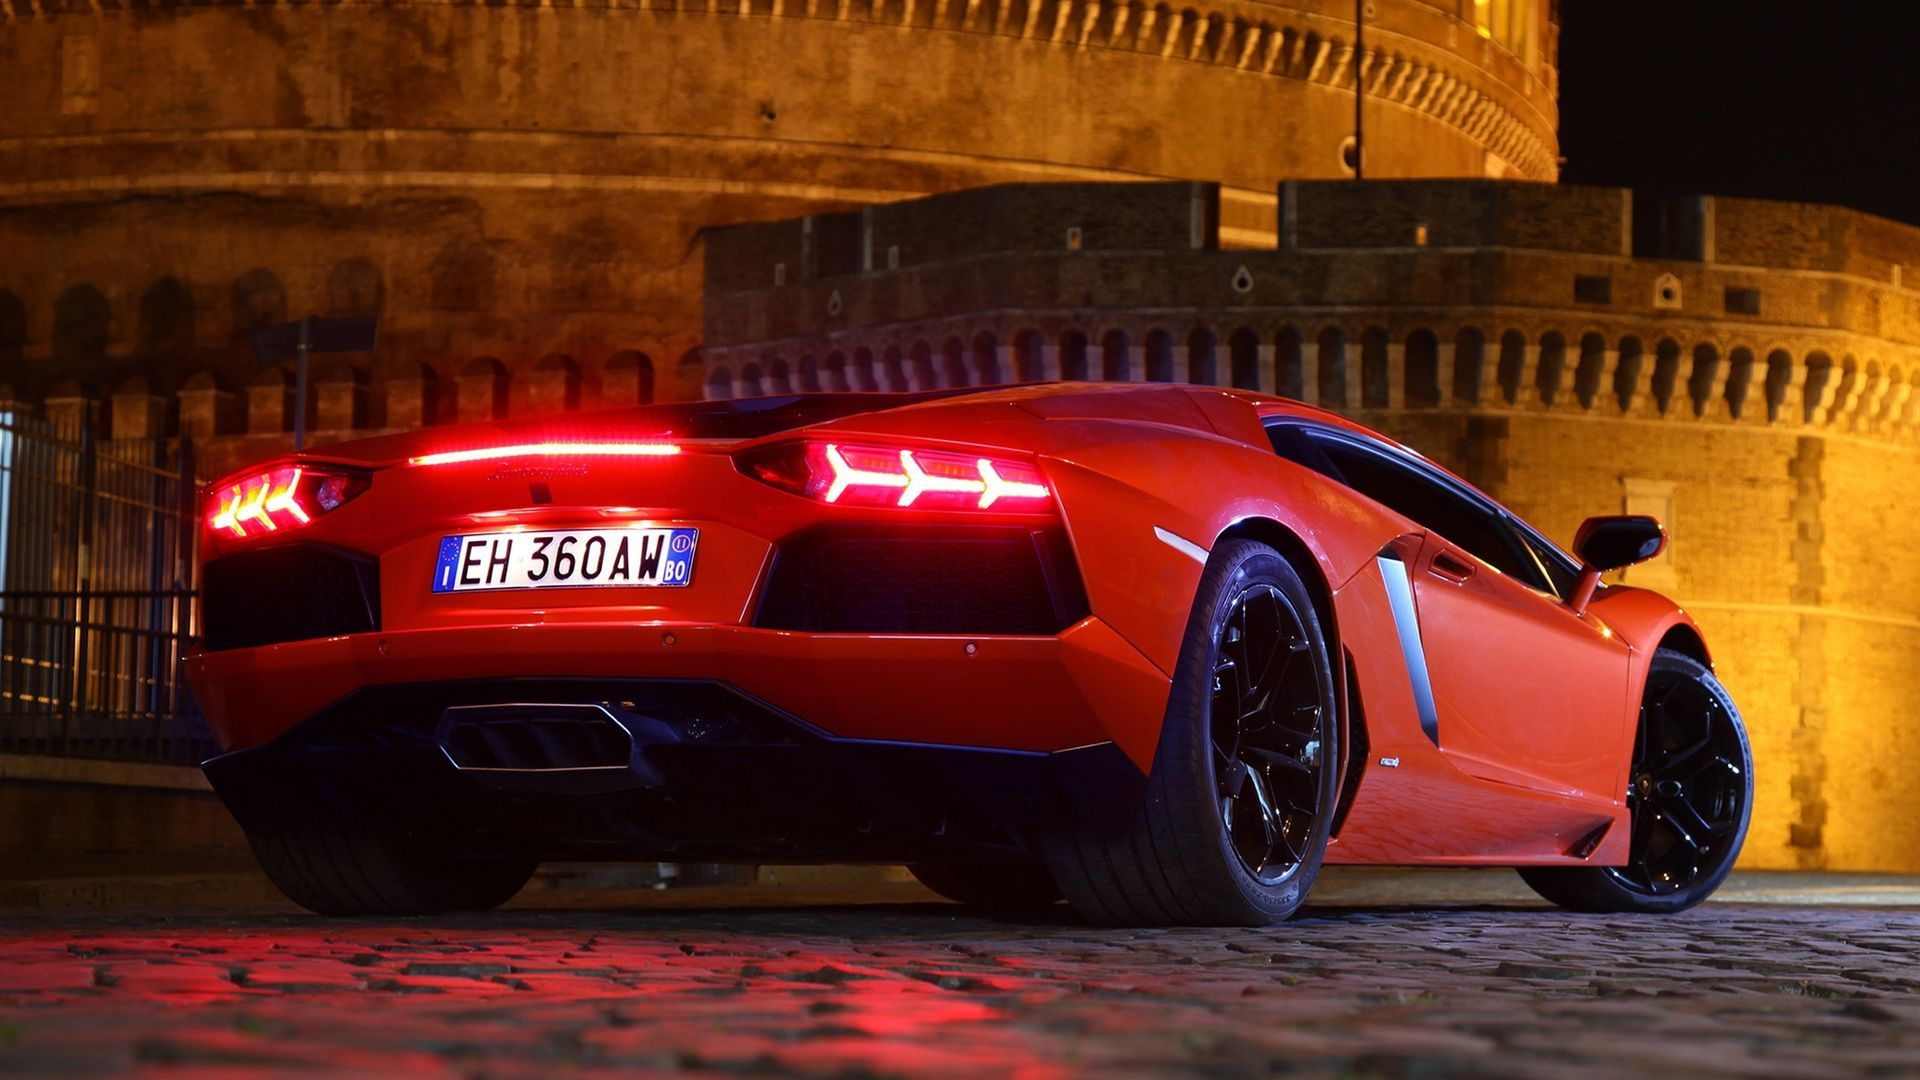 Cars Wallpapers: Red Lamborghini Aventador HD Wallpapers 1080p Cars HD